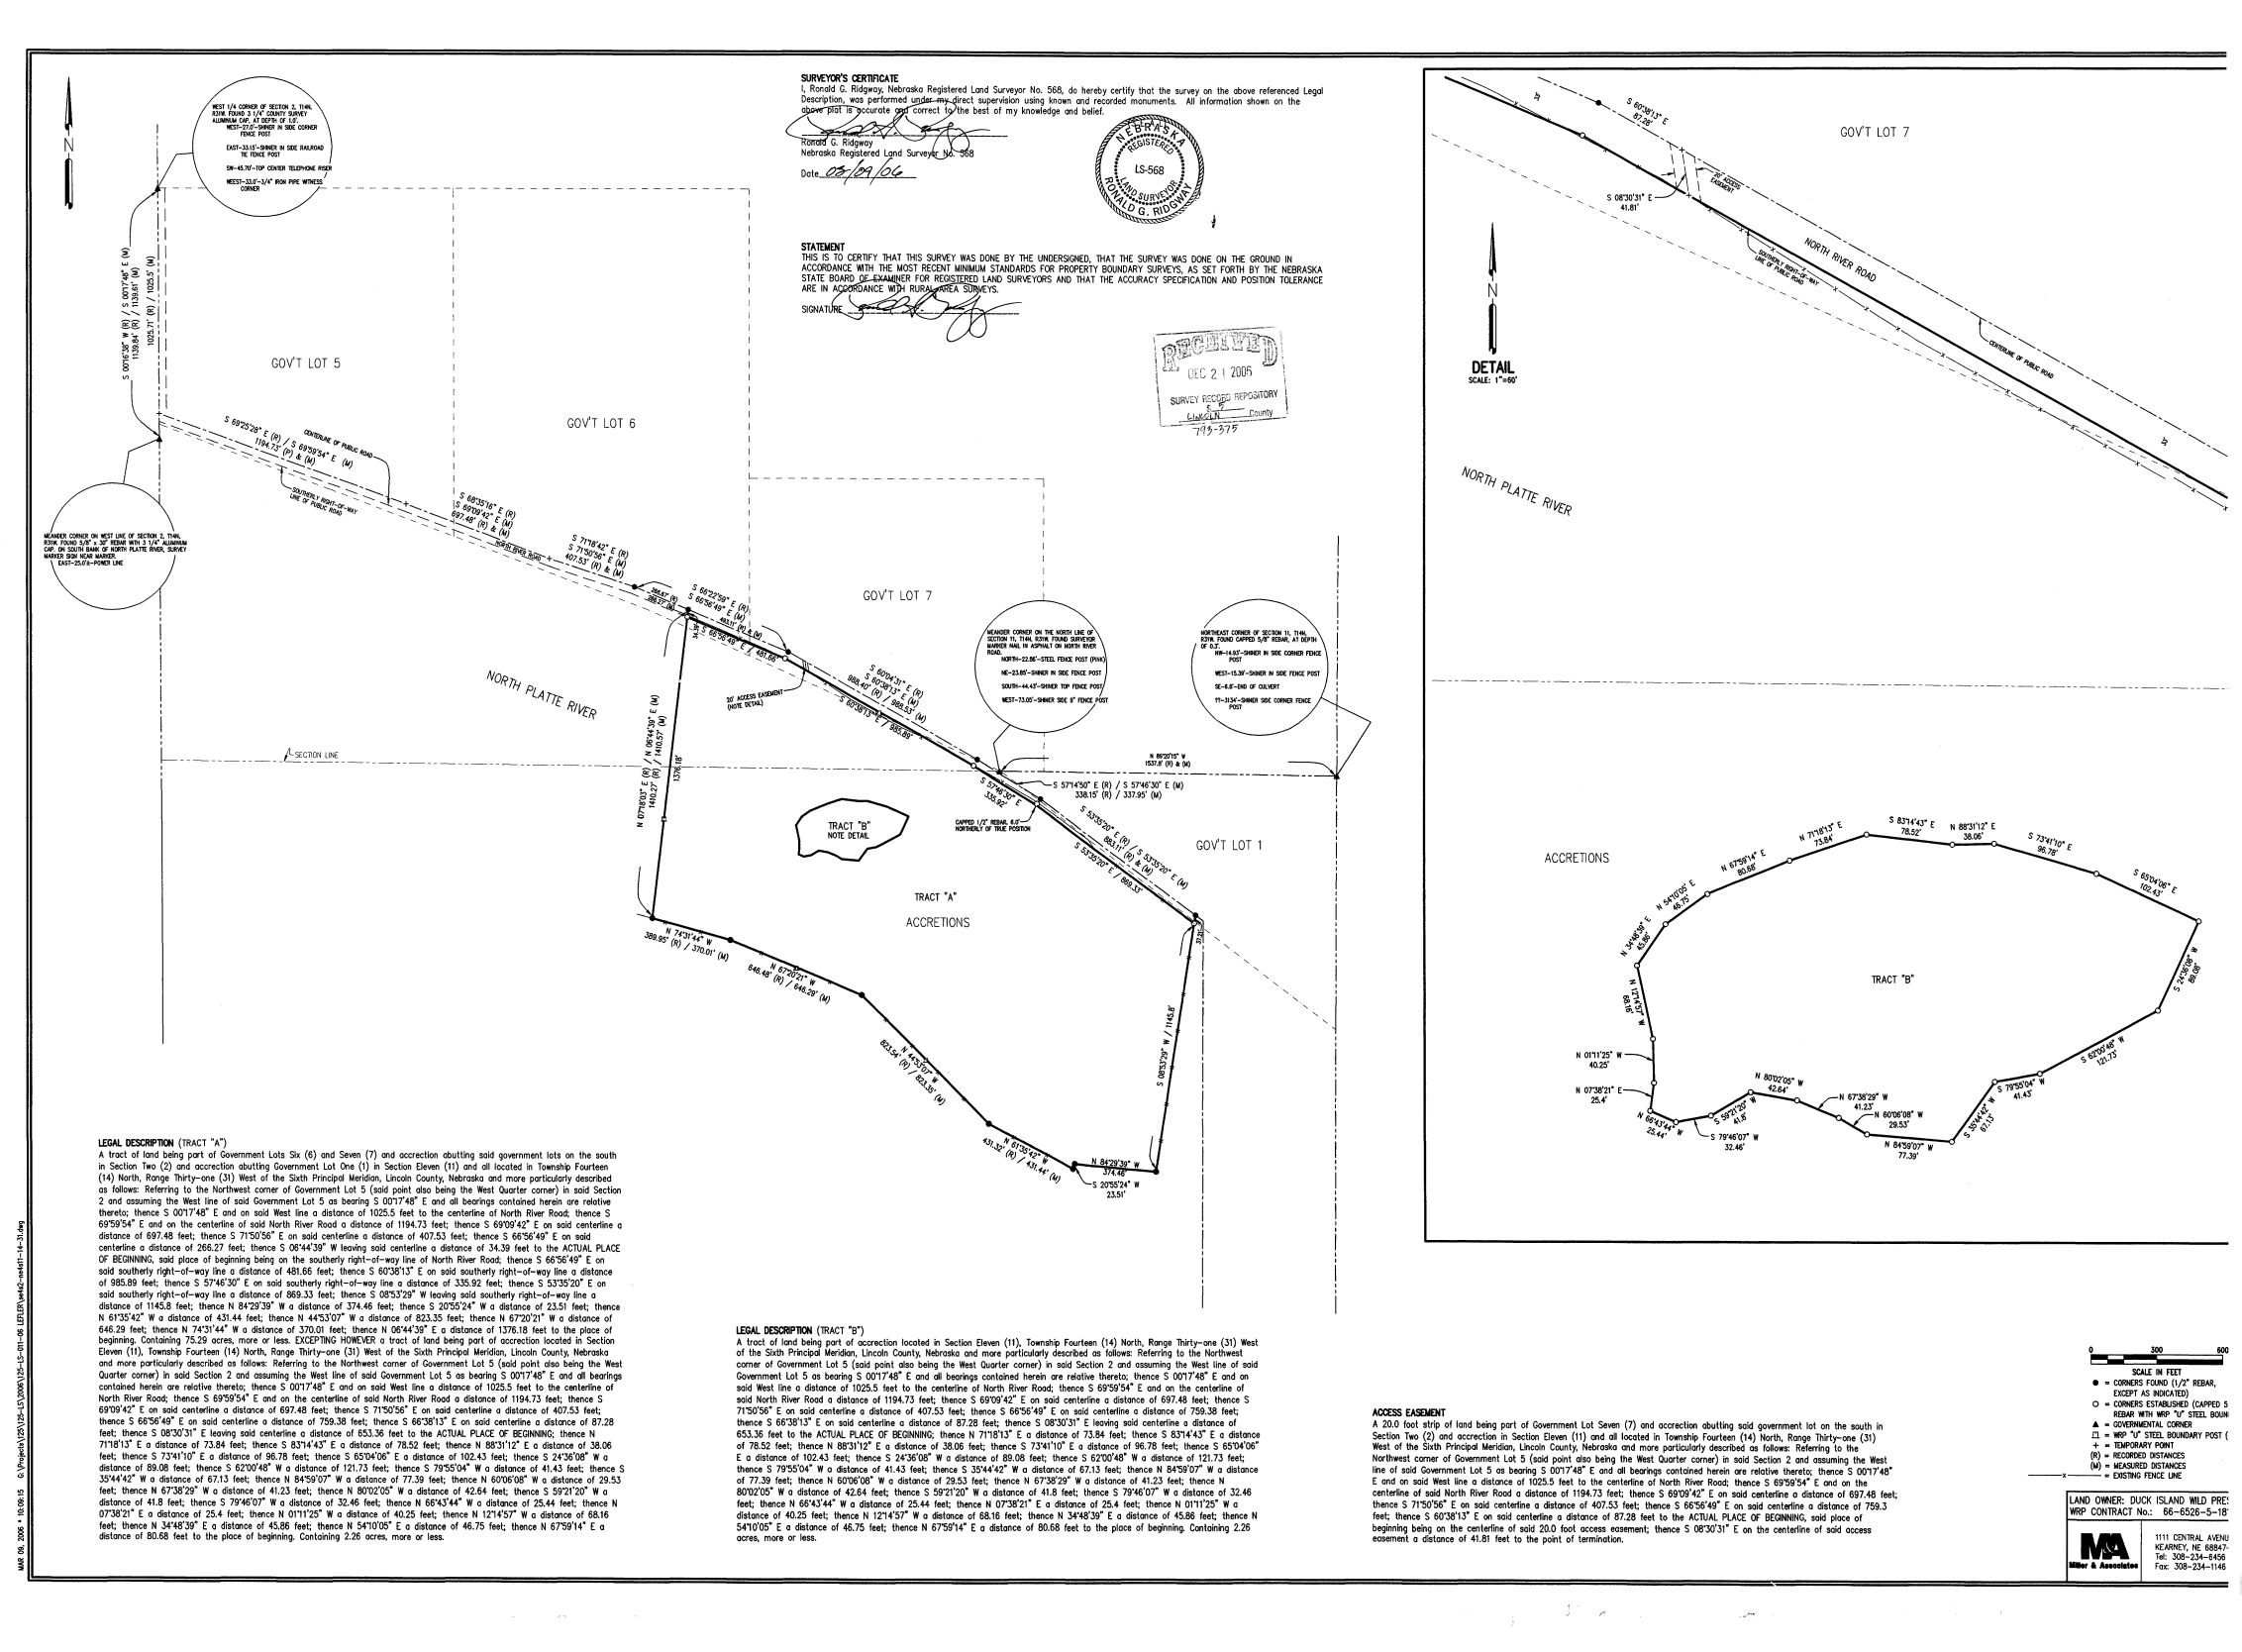 2006 Survey 793-375 showing exclusion area.png